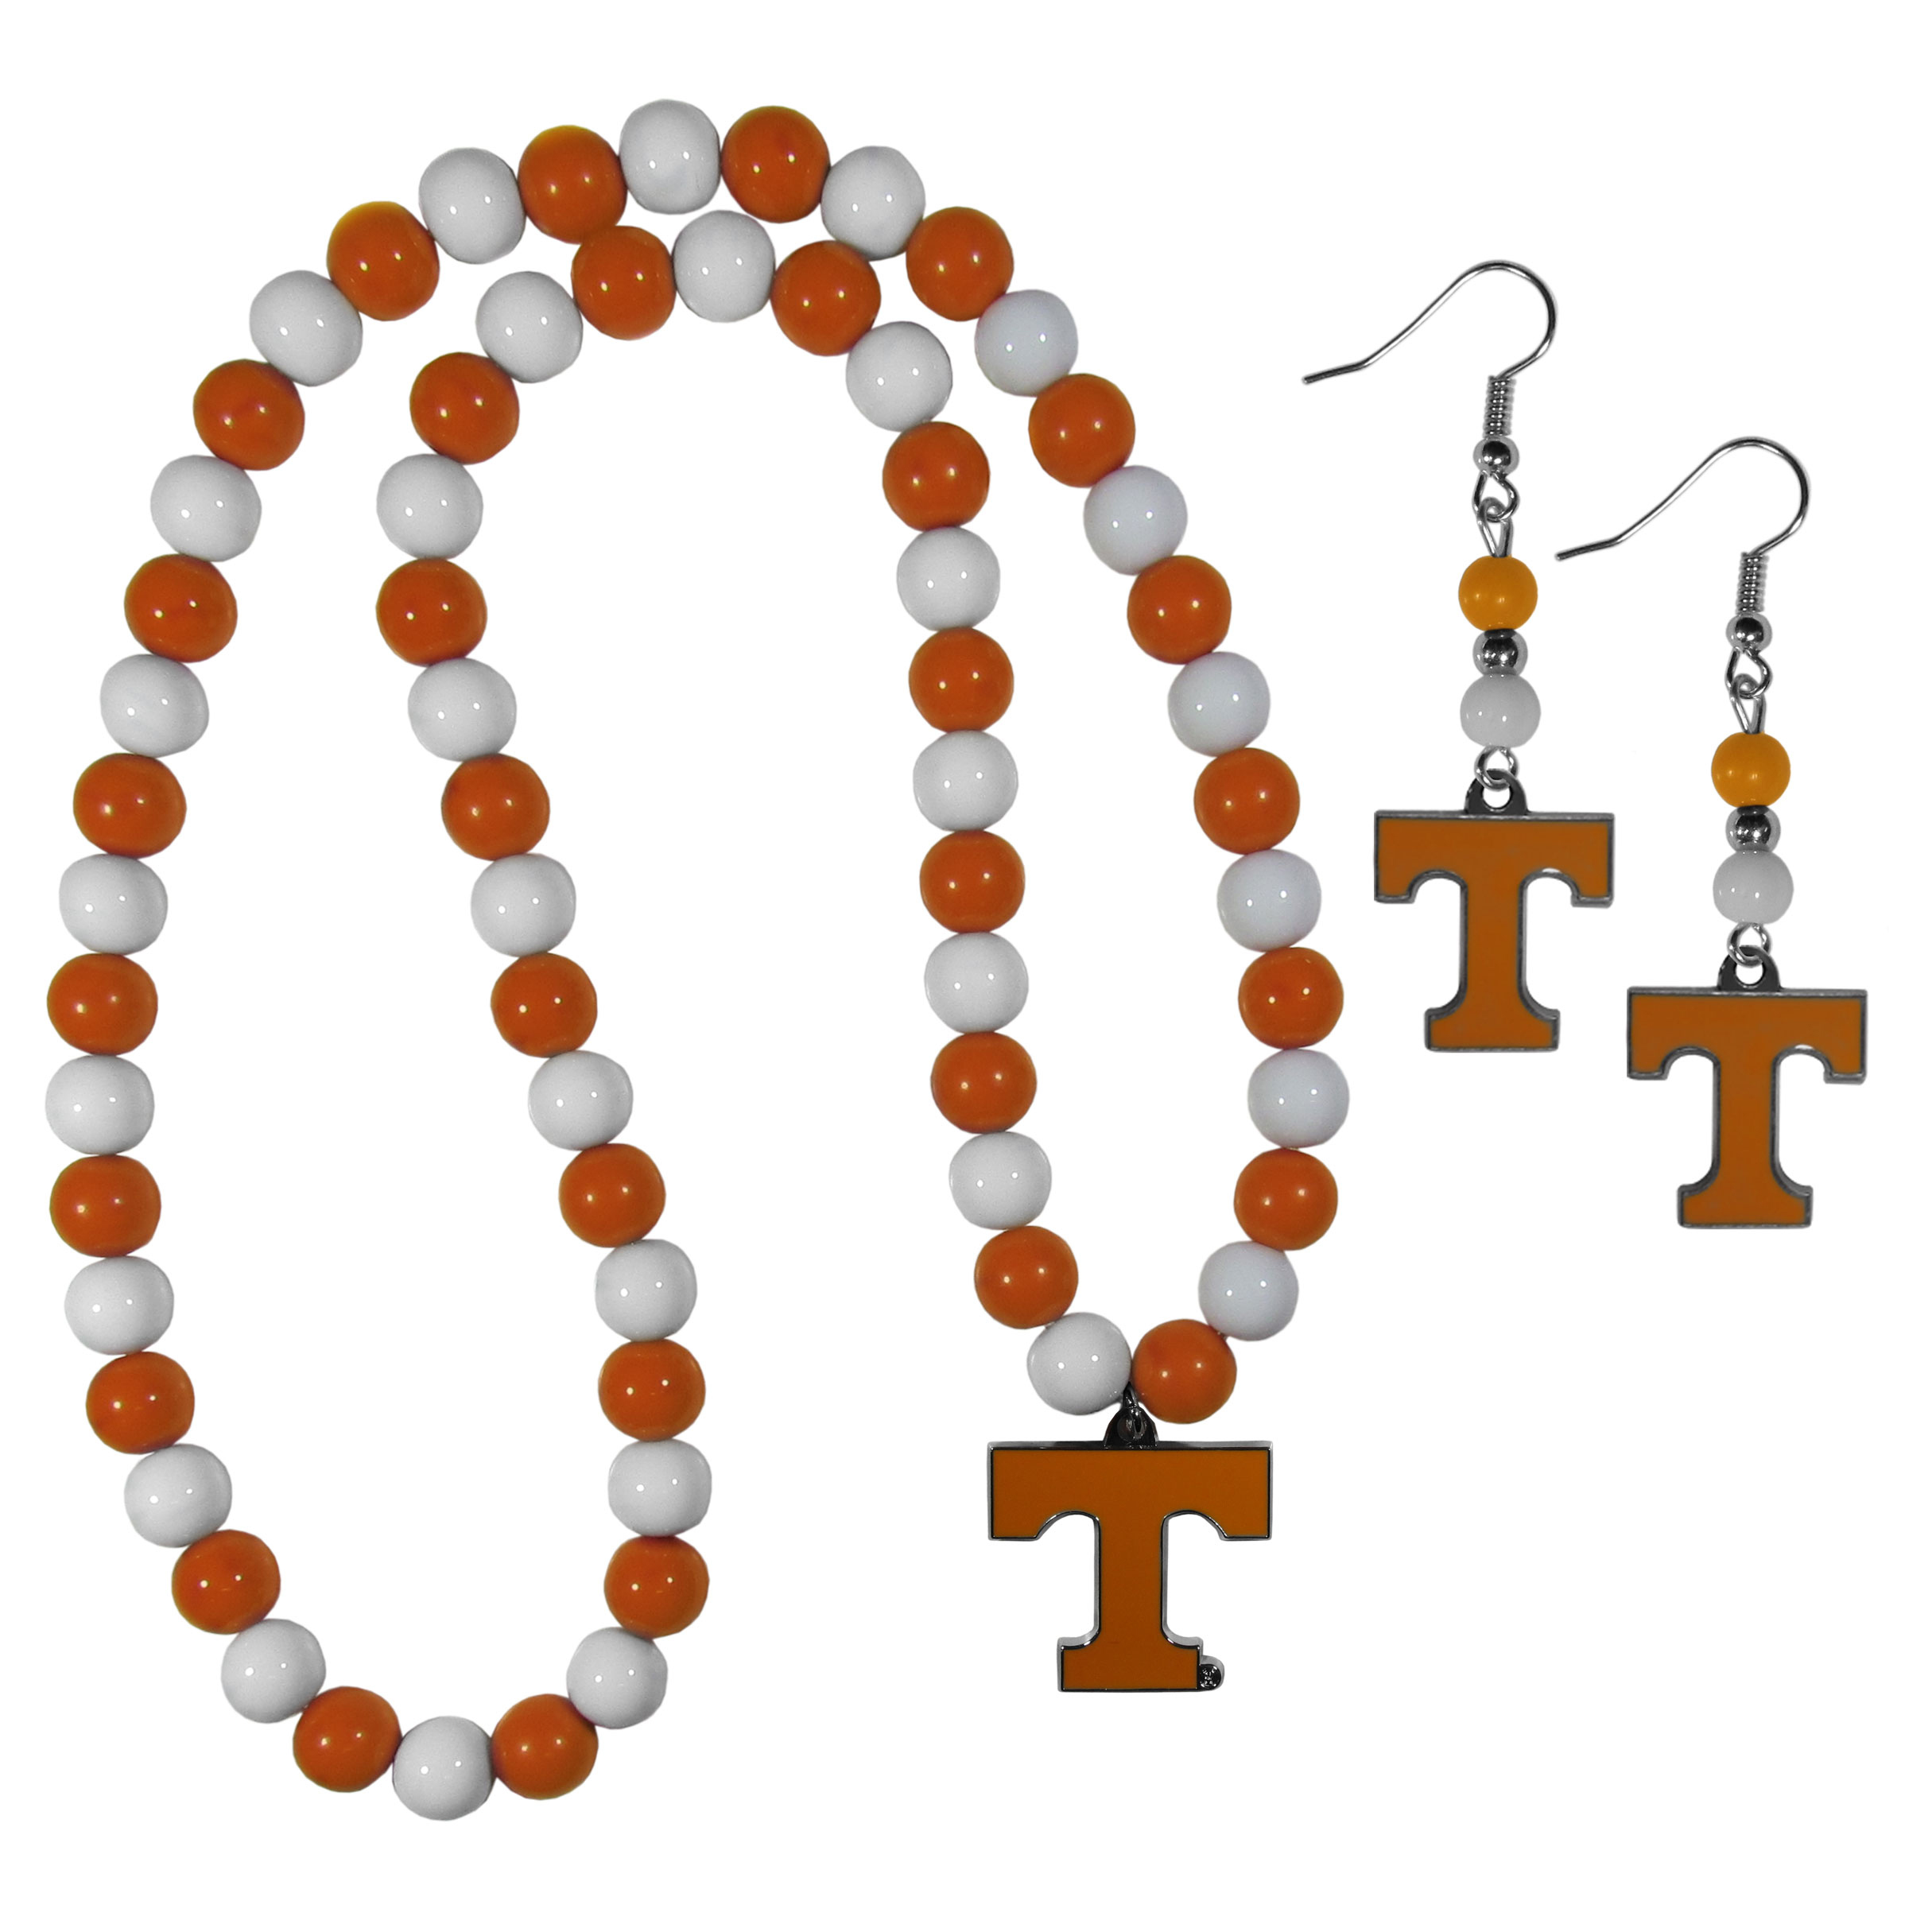 Tennessee Volunteers Fan Bead Earrings and Necklace Set - These fun and colorful Tennessee Volunteers fan bead jewelry pieces are an eyecatching way to show off your team spirit. The earrings feature hypoallergenic, nickel free fishhook post and 2 team colored beads with a beautifully carved team charm to finish this attractive dangle look. The mathcing bracelet has alternating team colored beads on a stretch cord and features a matching team charm.